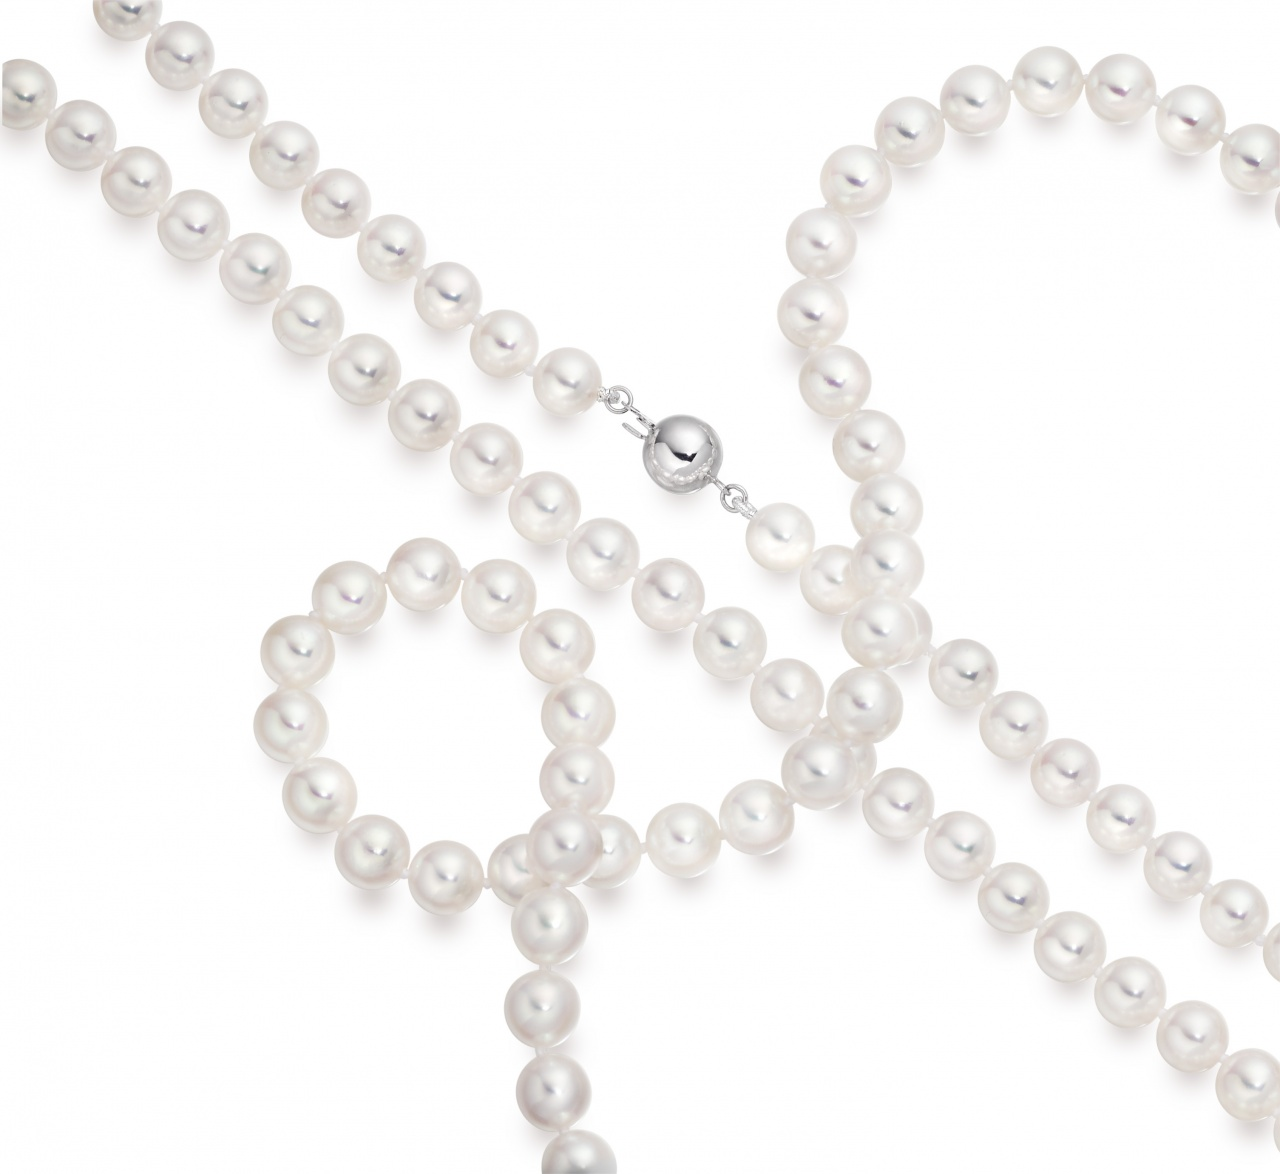 Matinee Length Akoya Pearl Necklace with 18ct Gold Clasp-1